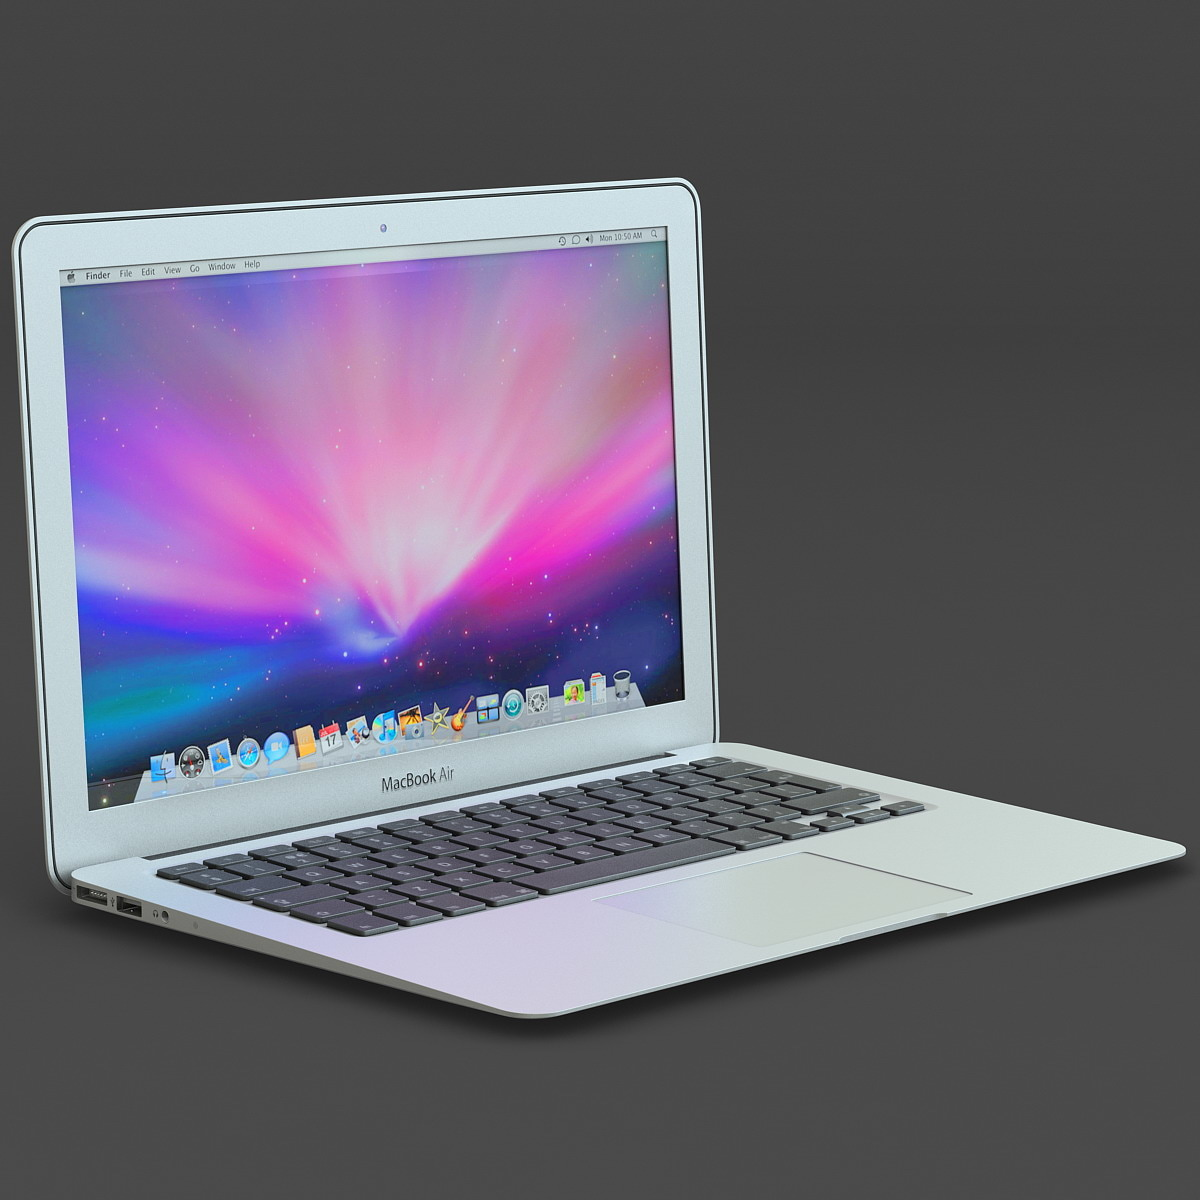 105172_Apple_MacBook_Air_2_004.jpg